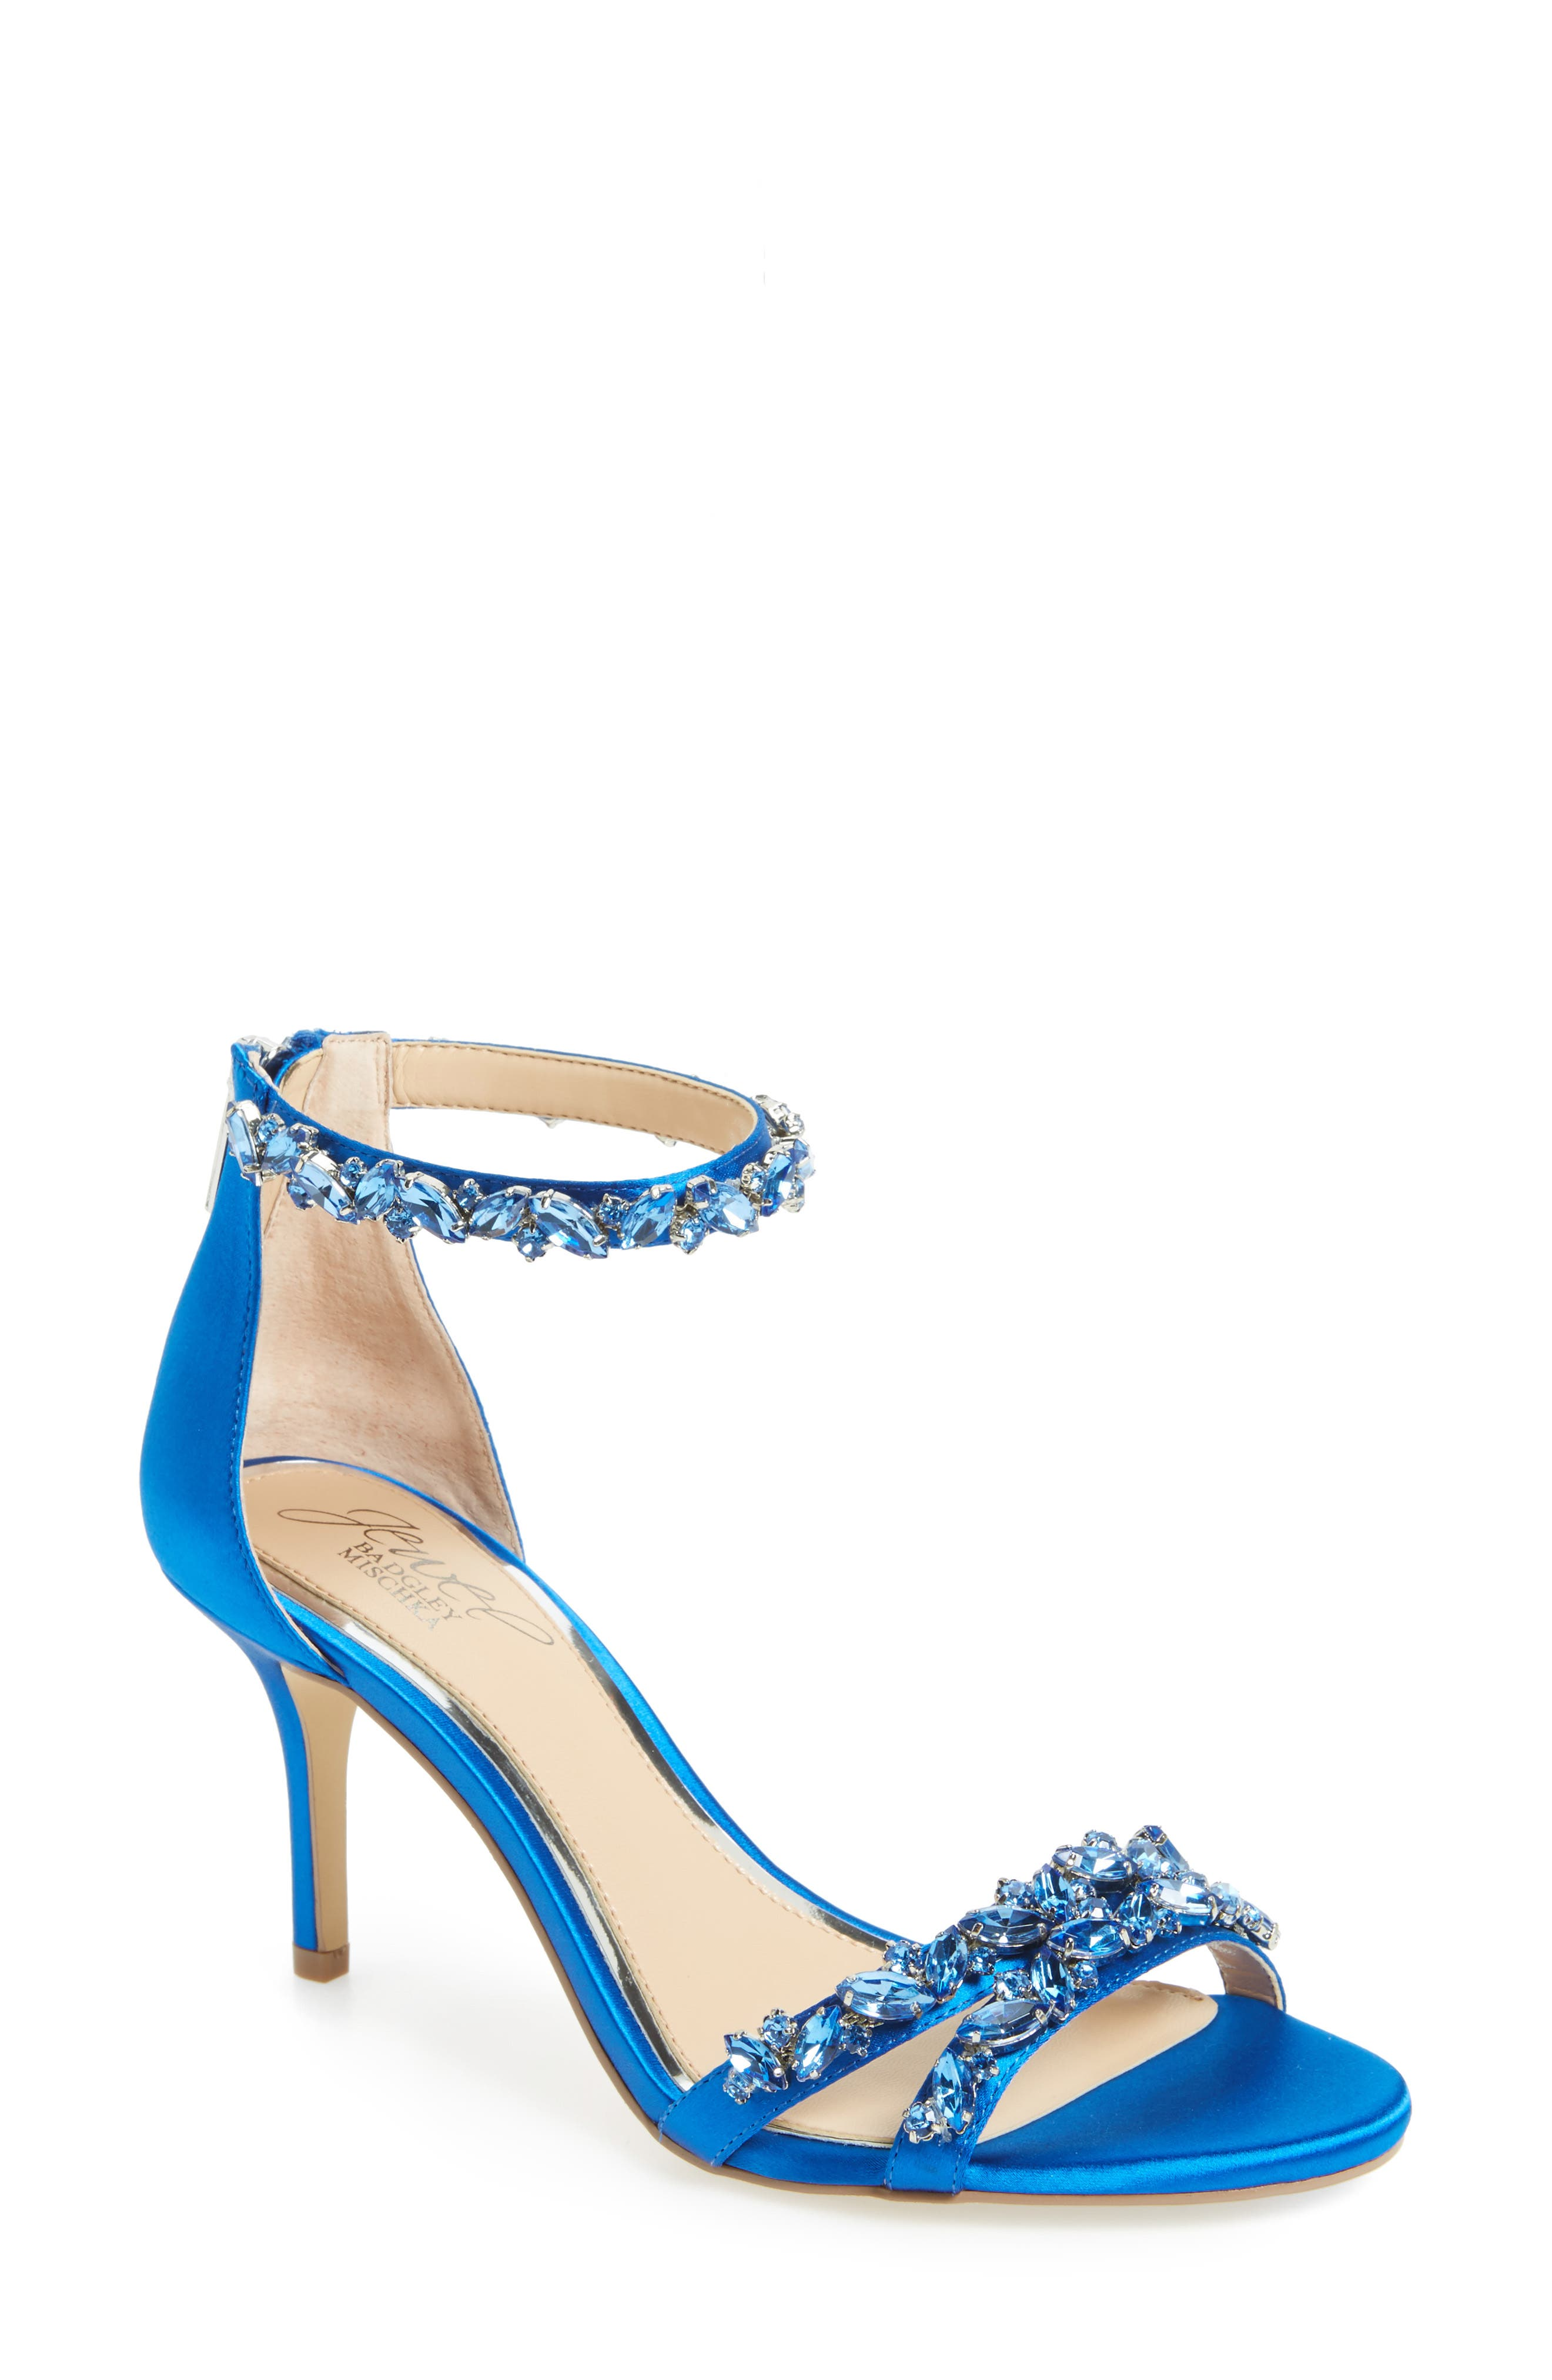 Caroline Embellished Sandal,                             Main thumbnail 4, color,